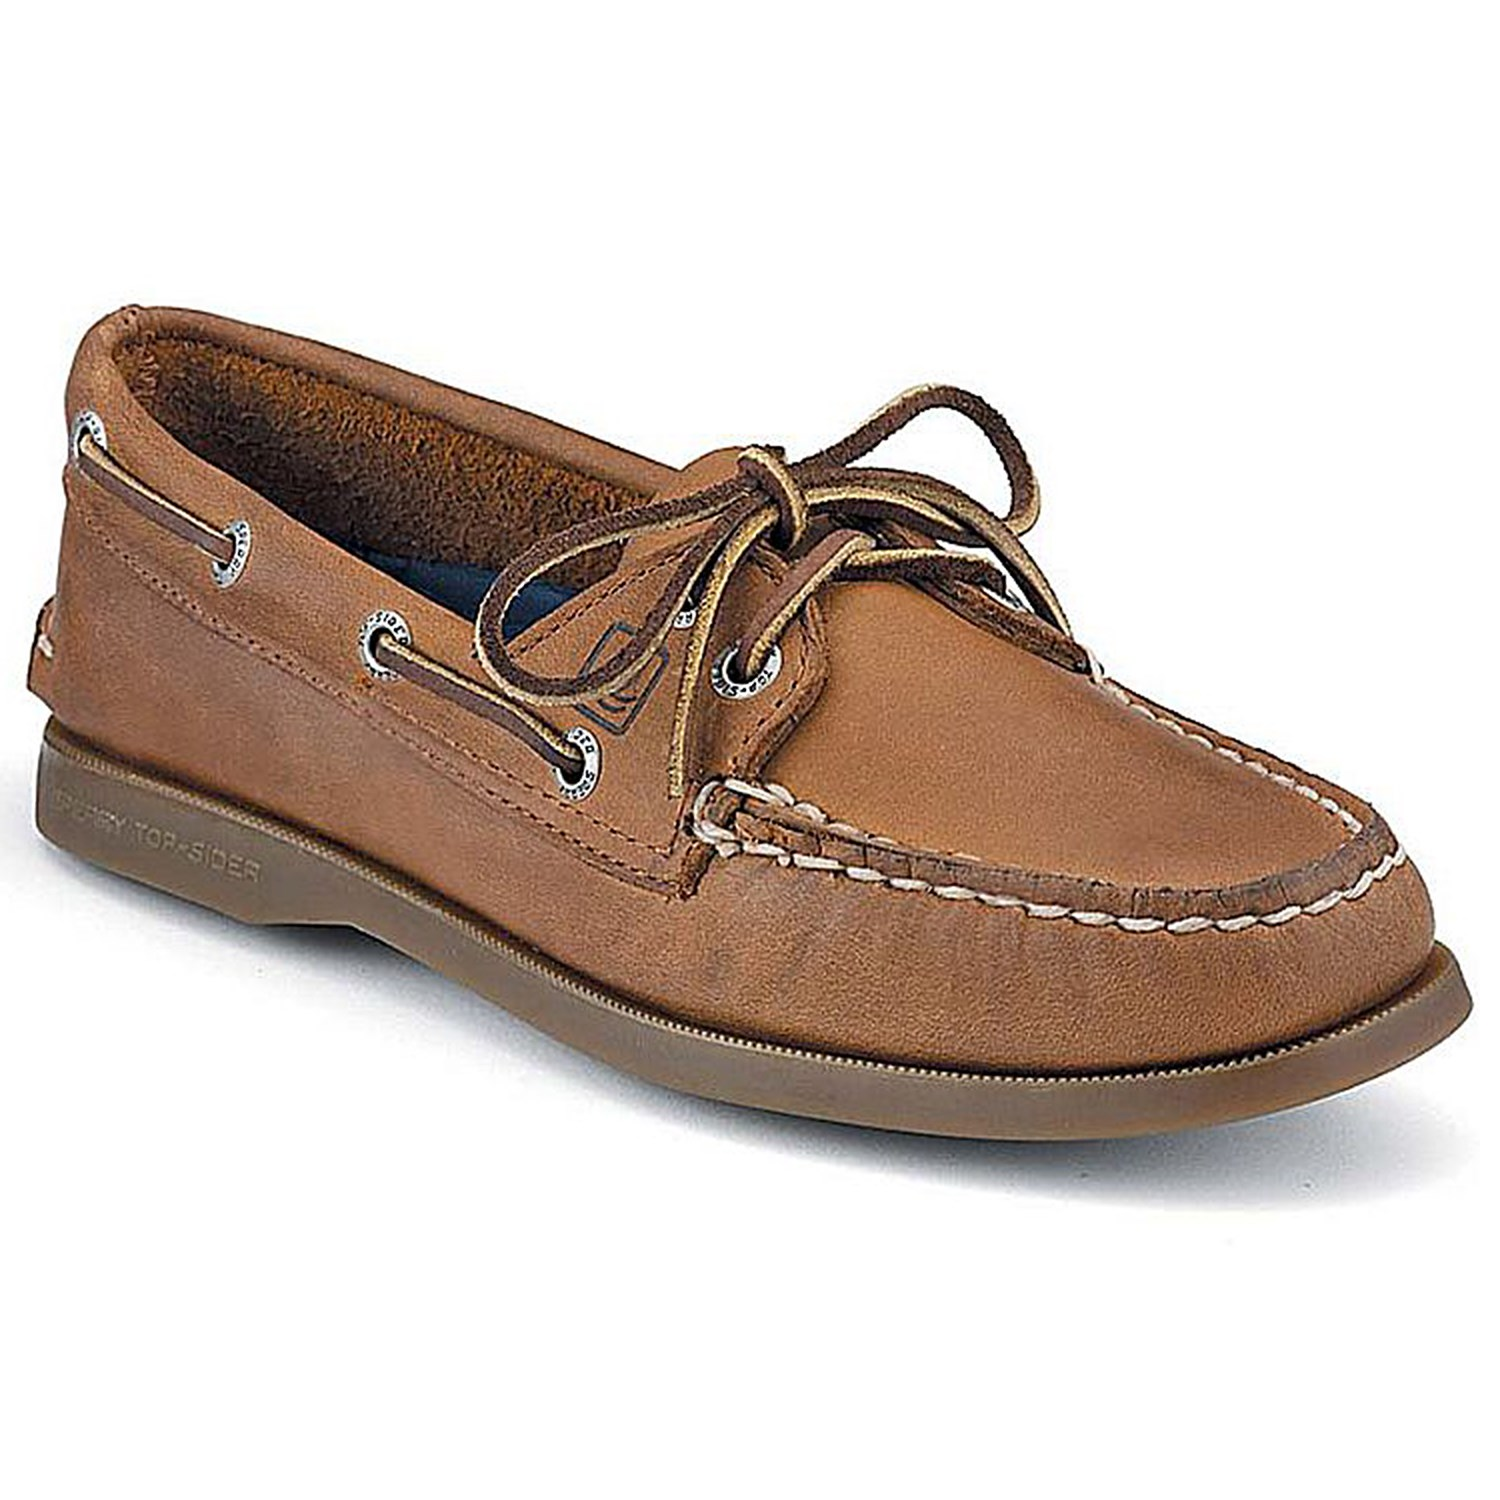 Sperry Top Sider Shoes Price